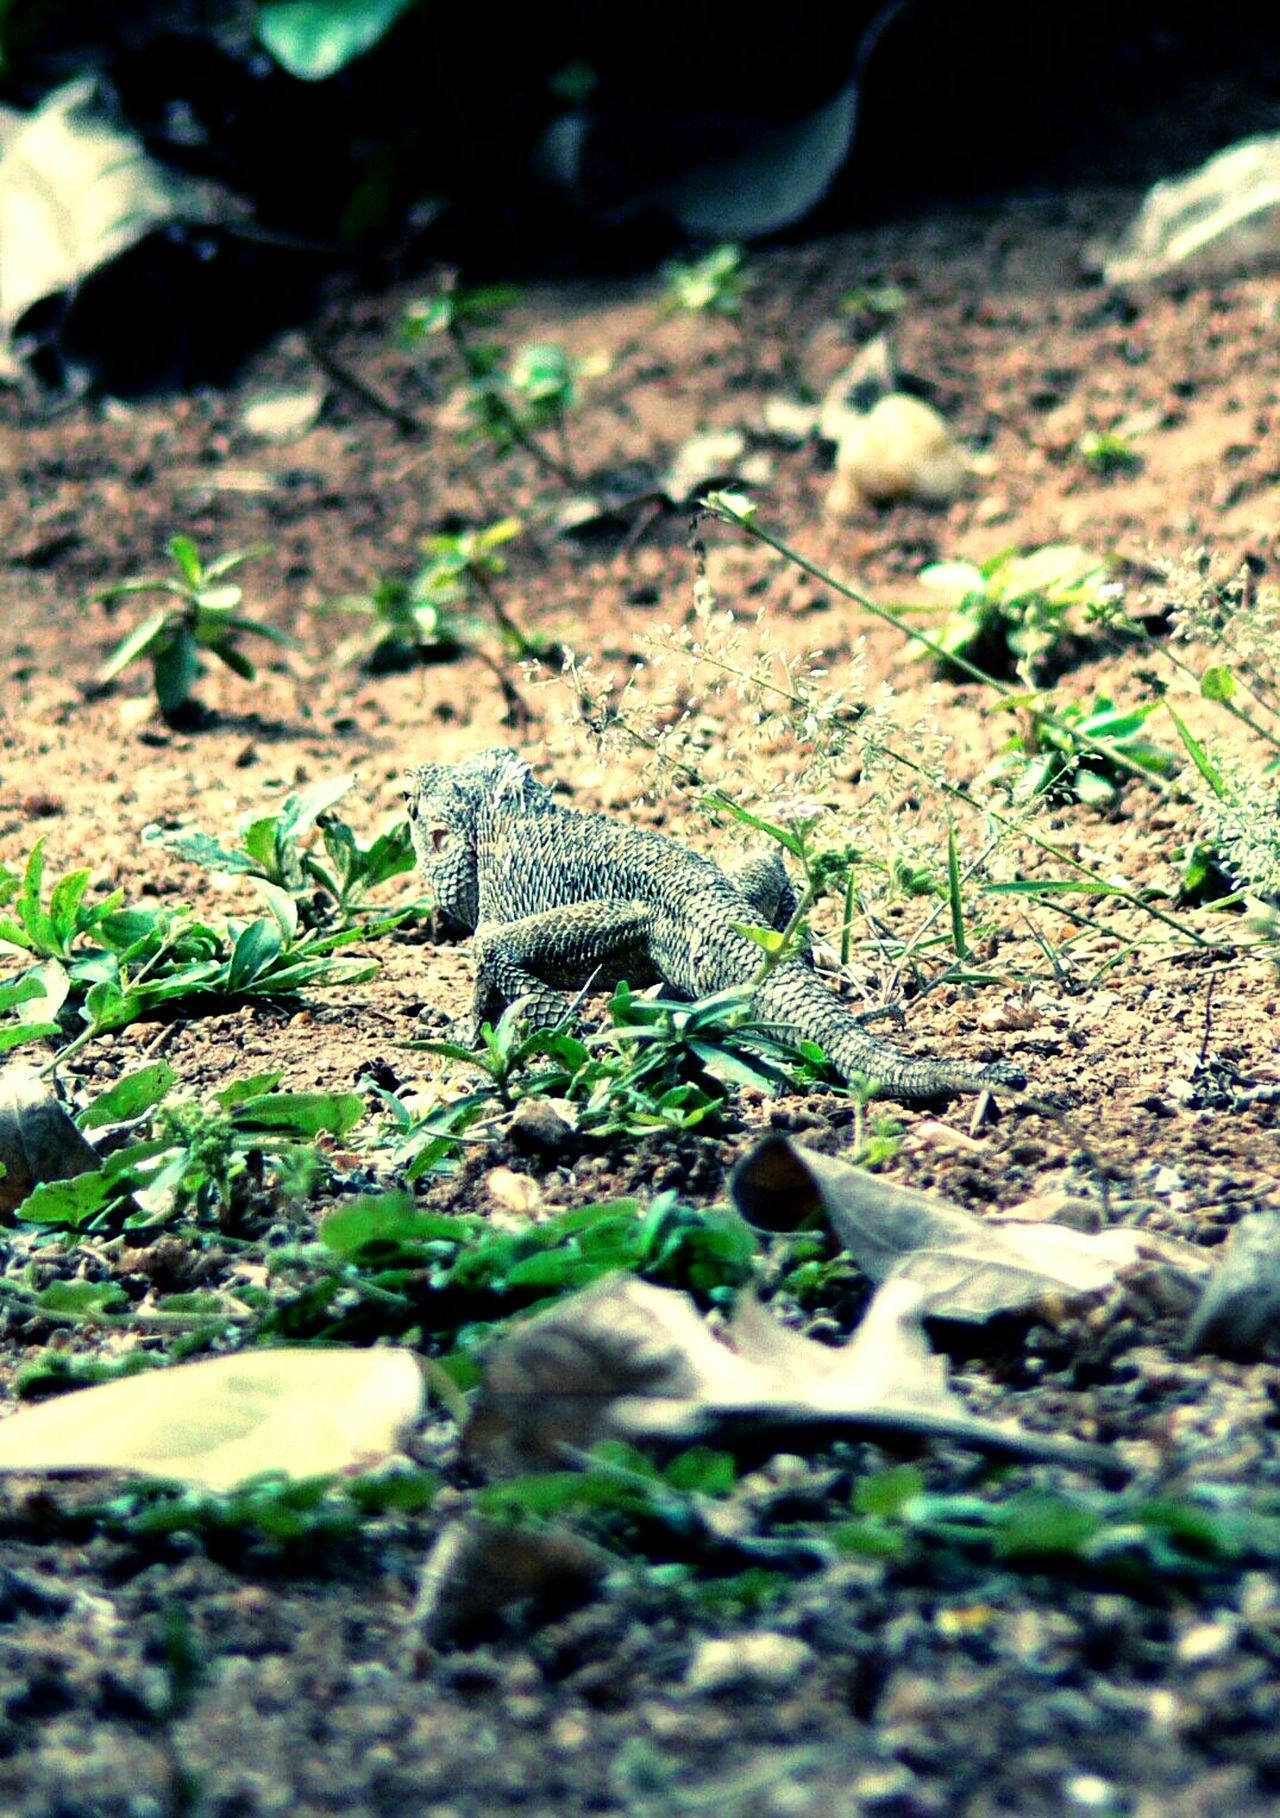 The Lizard Madness In The Garden Waiting For Prey Lizard Love Lizard Watching Lizard Cuteness Lizard Nature Eyeem Lizards EyeEmBestPics Taking Photos EyeEm Gallery Eyeemphotography EyeEm Best Shots - Nature EyeEm Nature Lover Lizardporn The Lizard Showcase: November Cold Blooded Repltile Predator